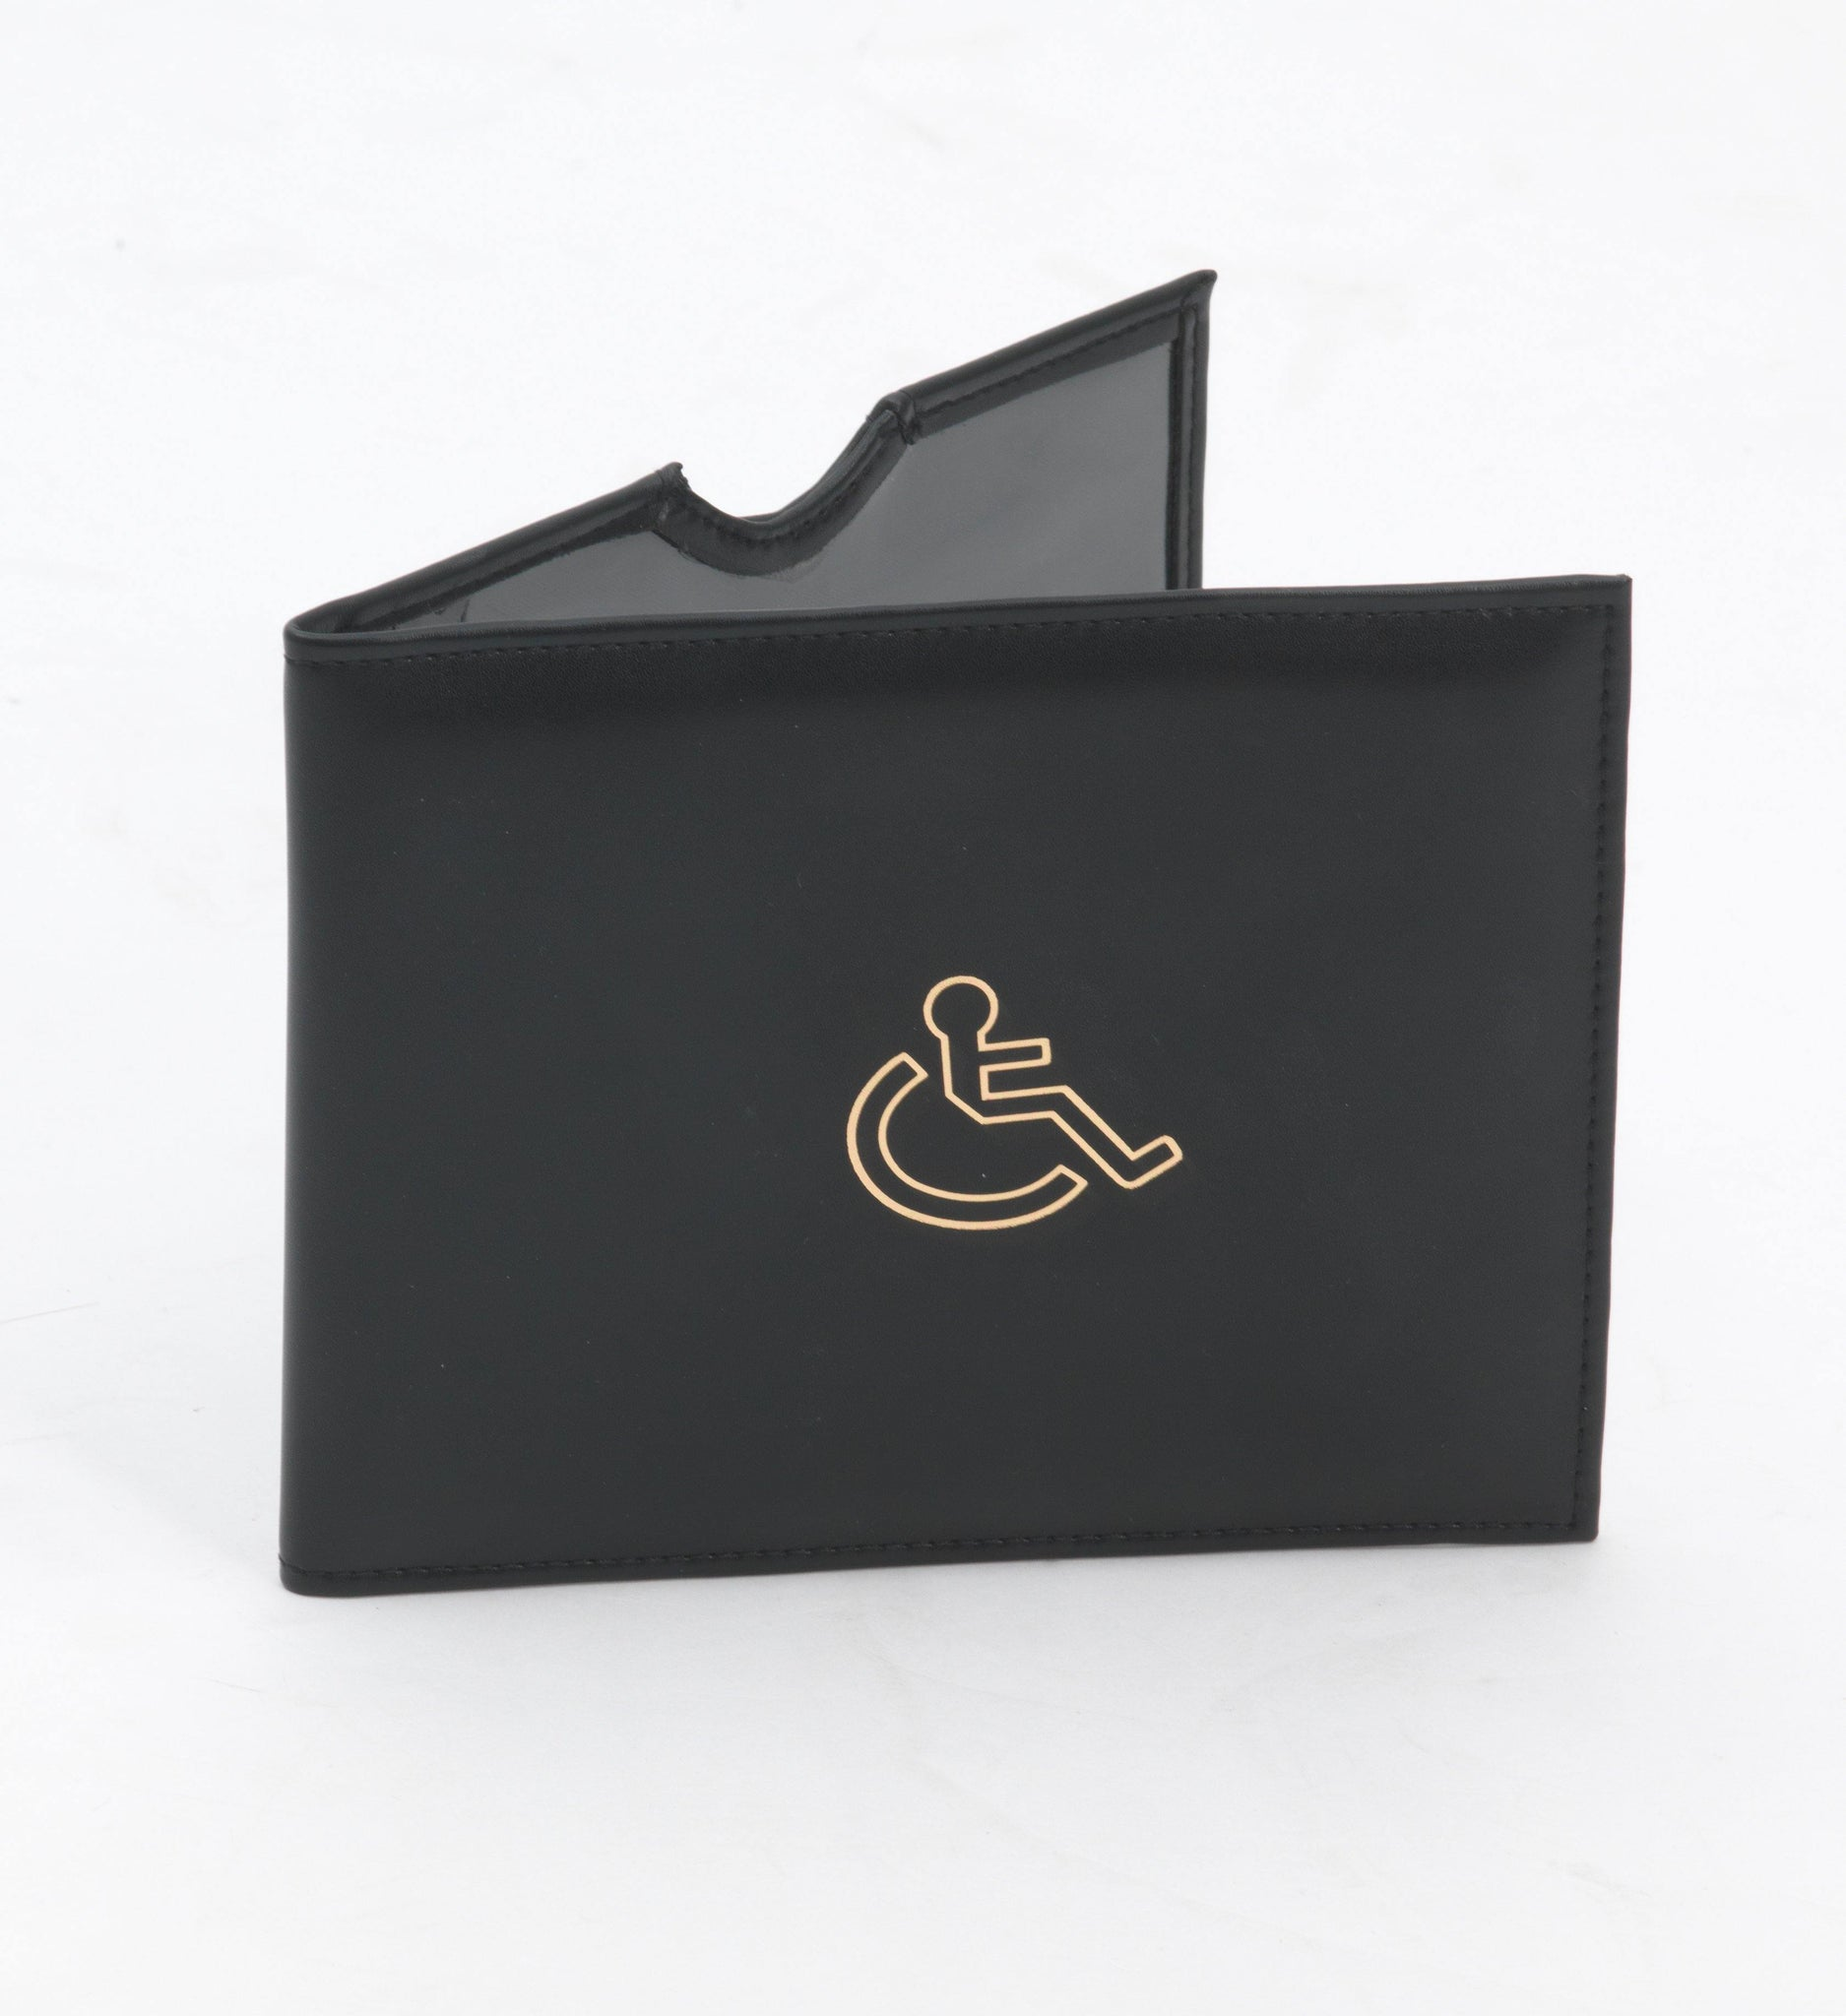 Pu Disabled Badge Holder - Mobility2you - discount wholesale prices - from Drive DeVilbiss Healthcare